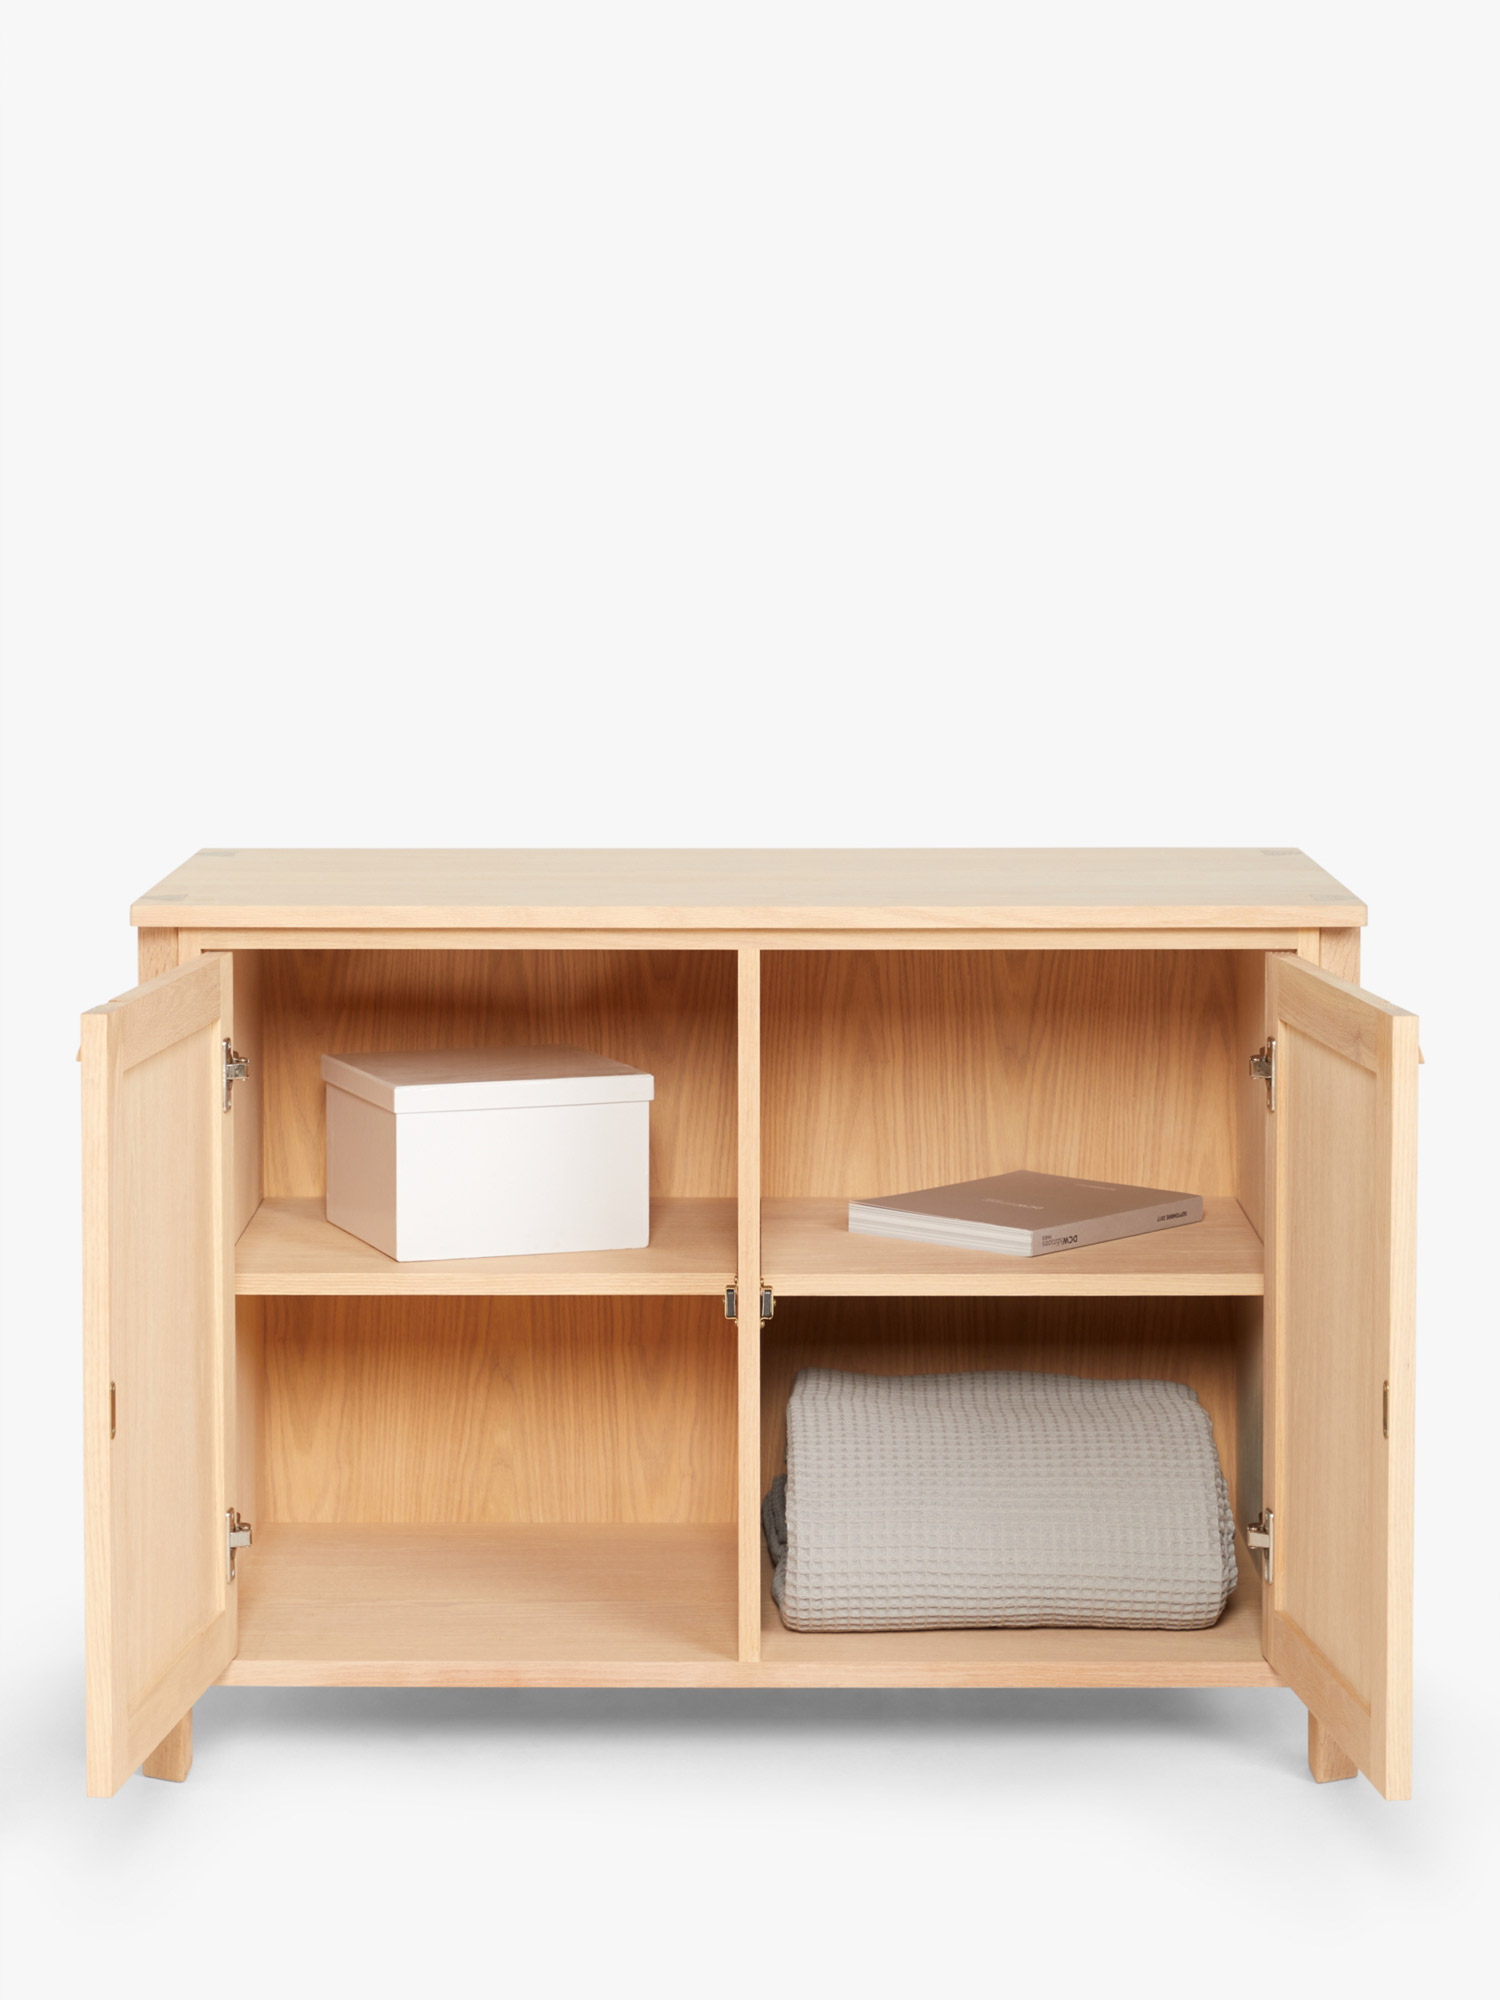 Marque Furniture designs Dovetail for John Lewis & Partners